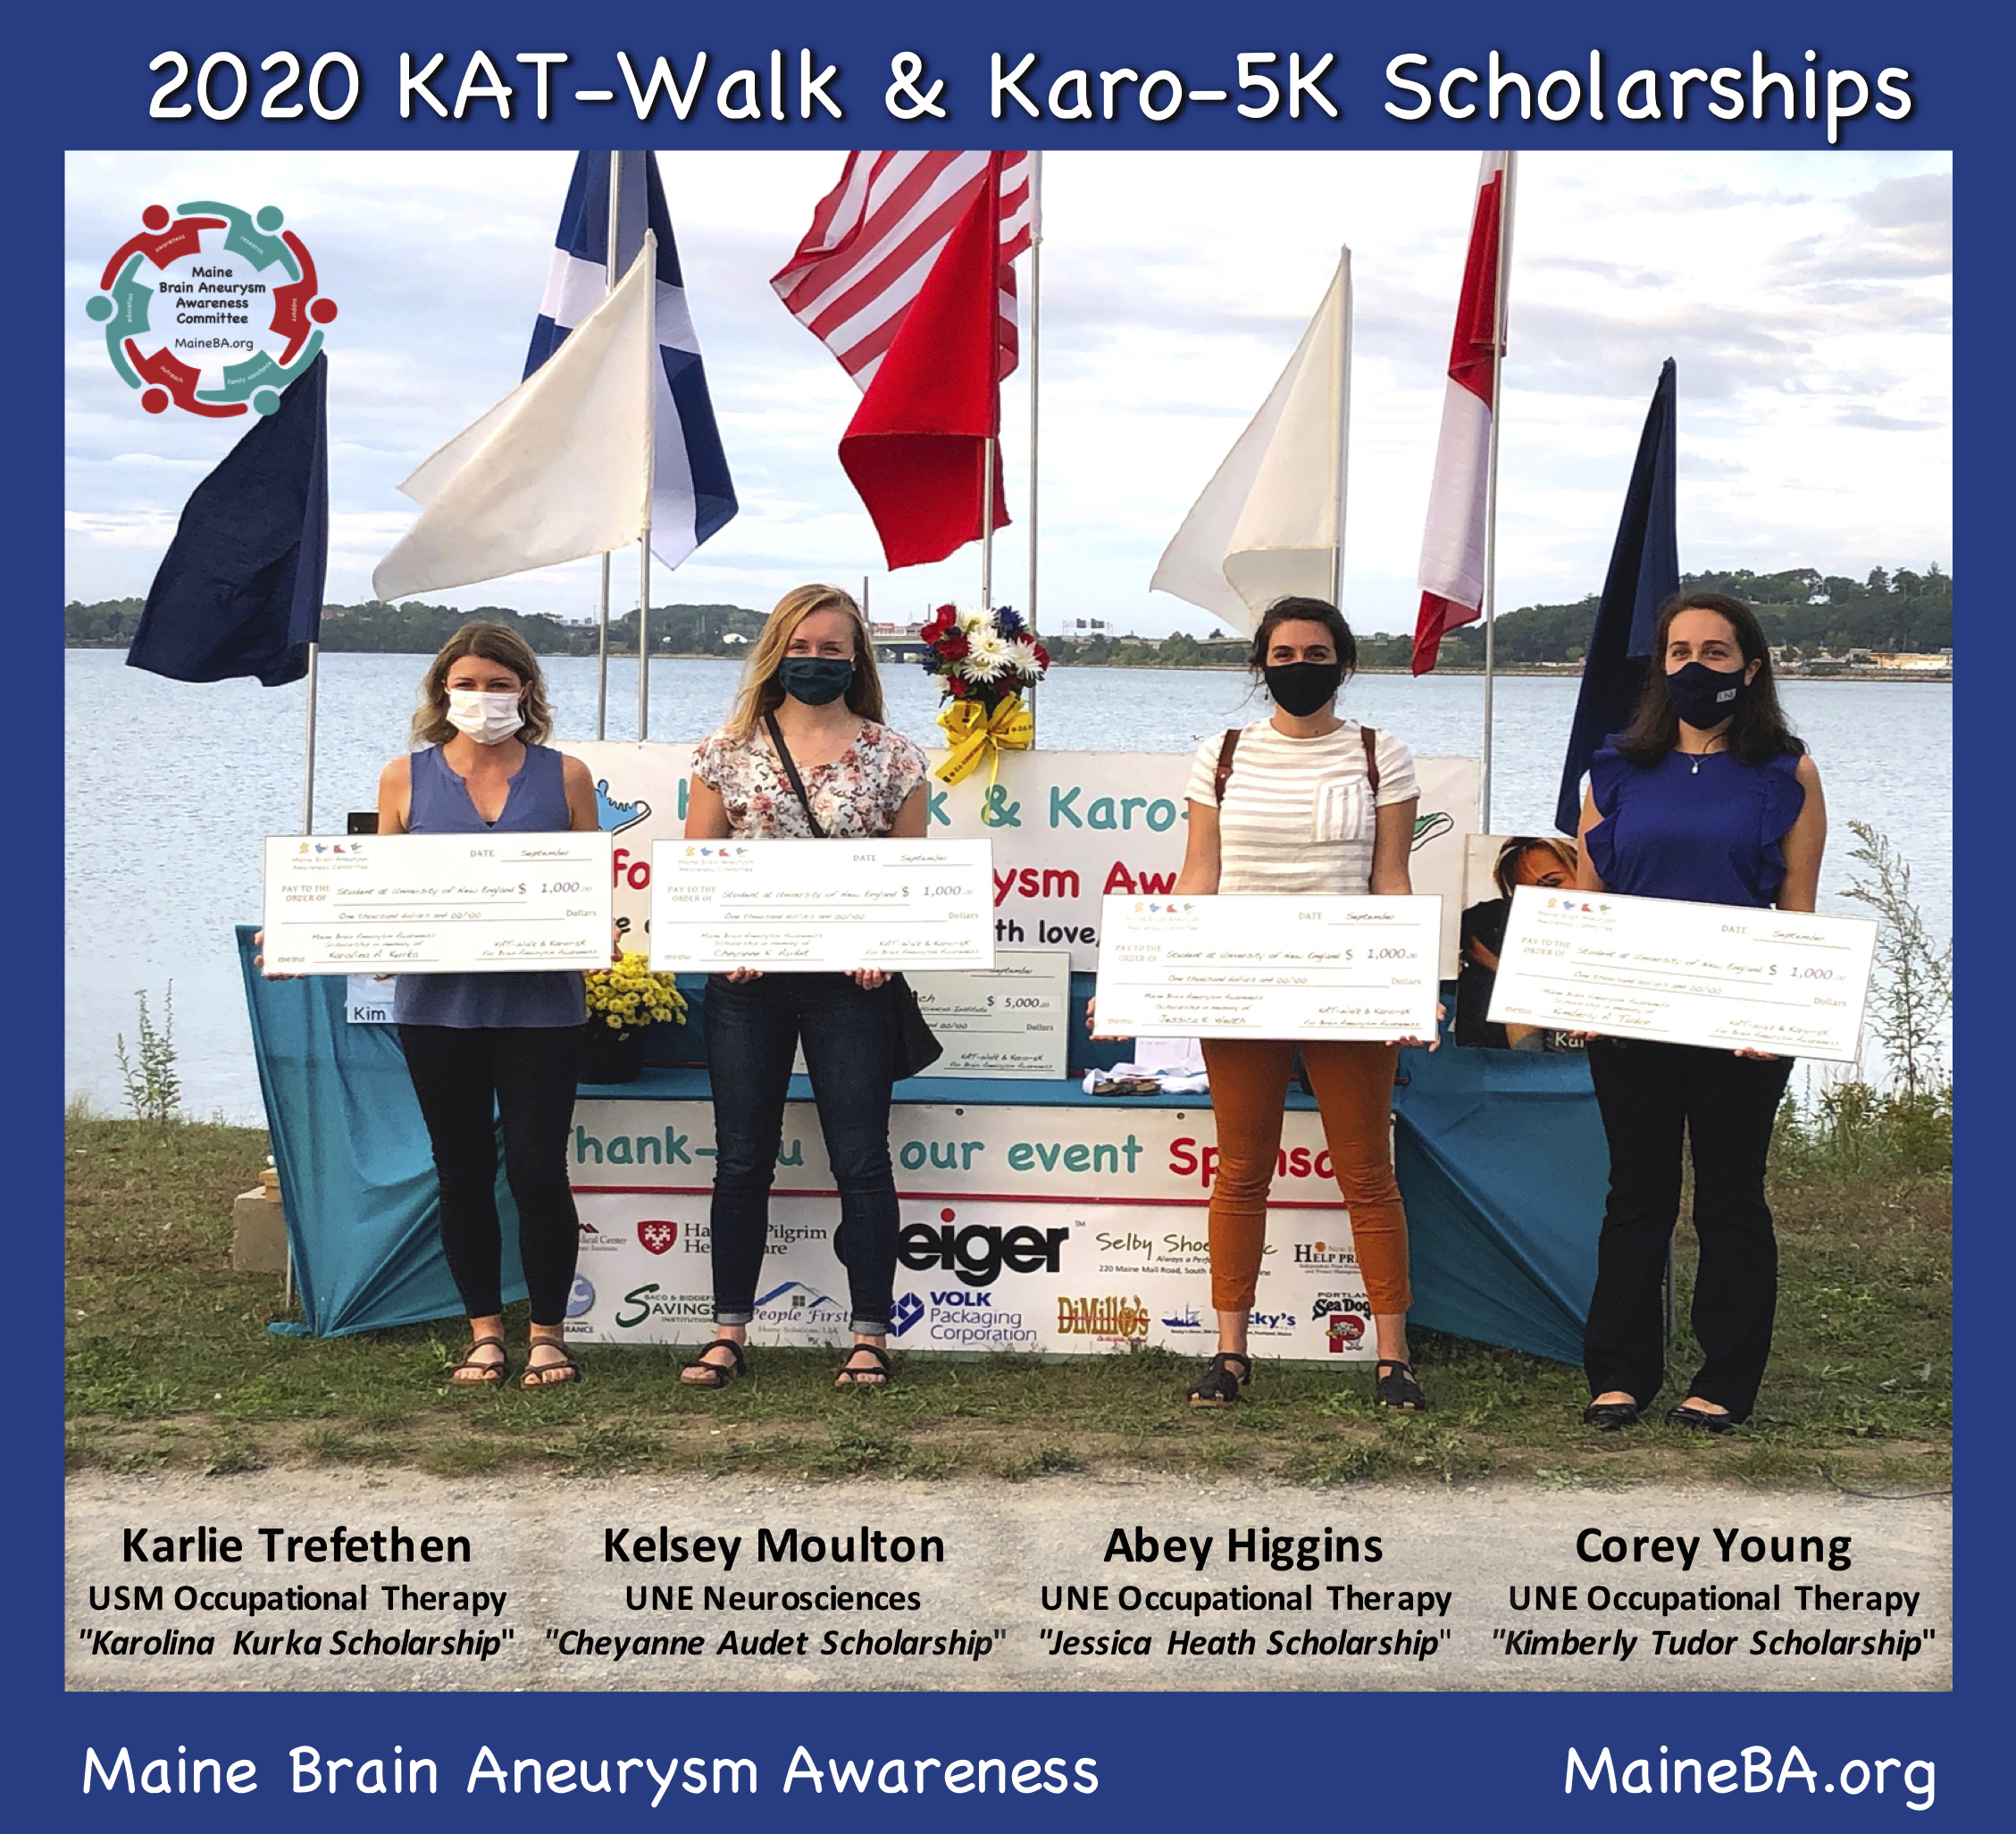 2020 Katwalk and karo-5k scholarship winners